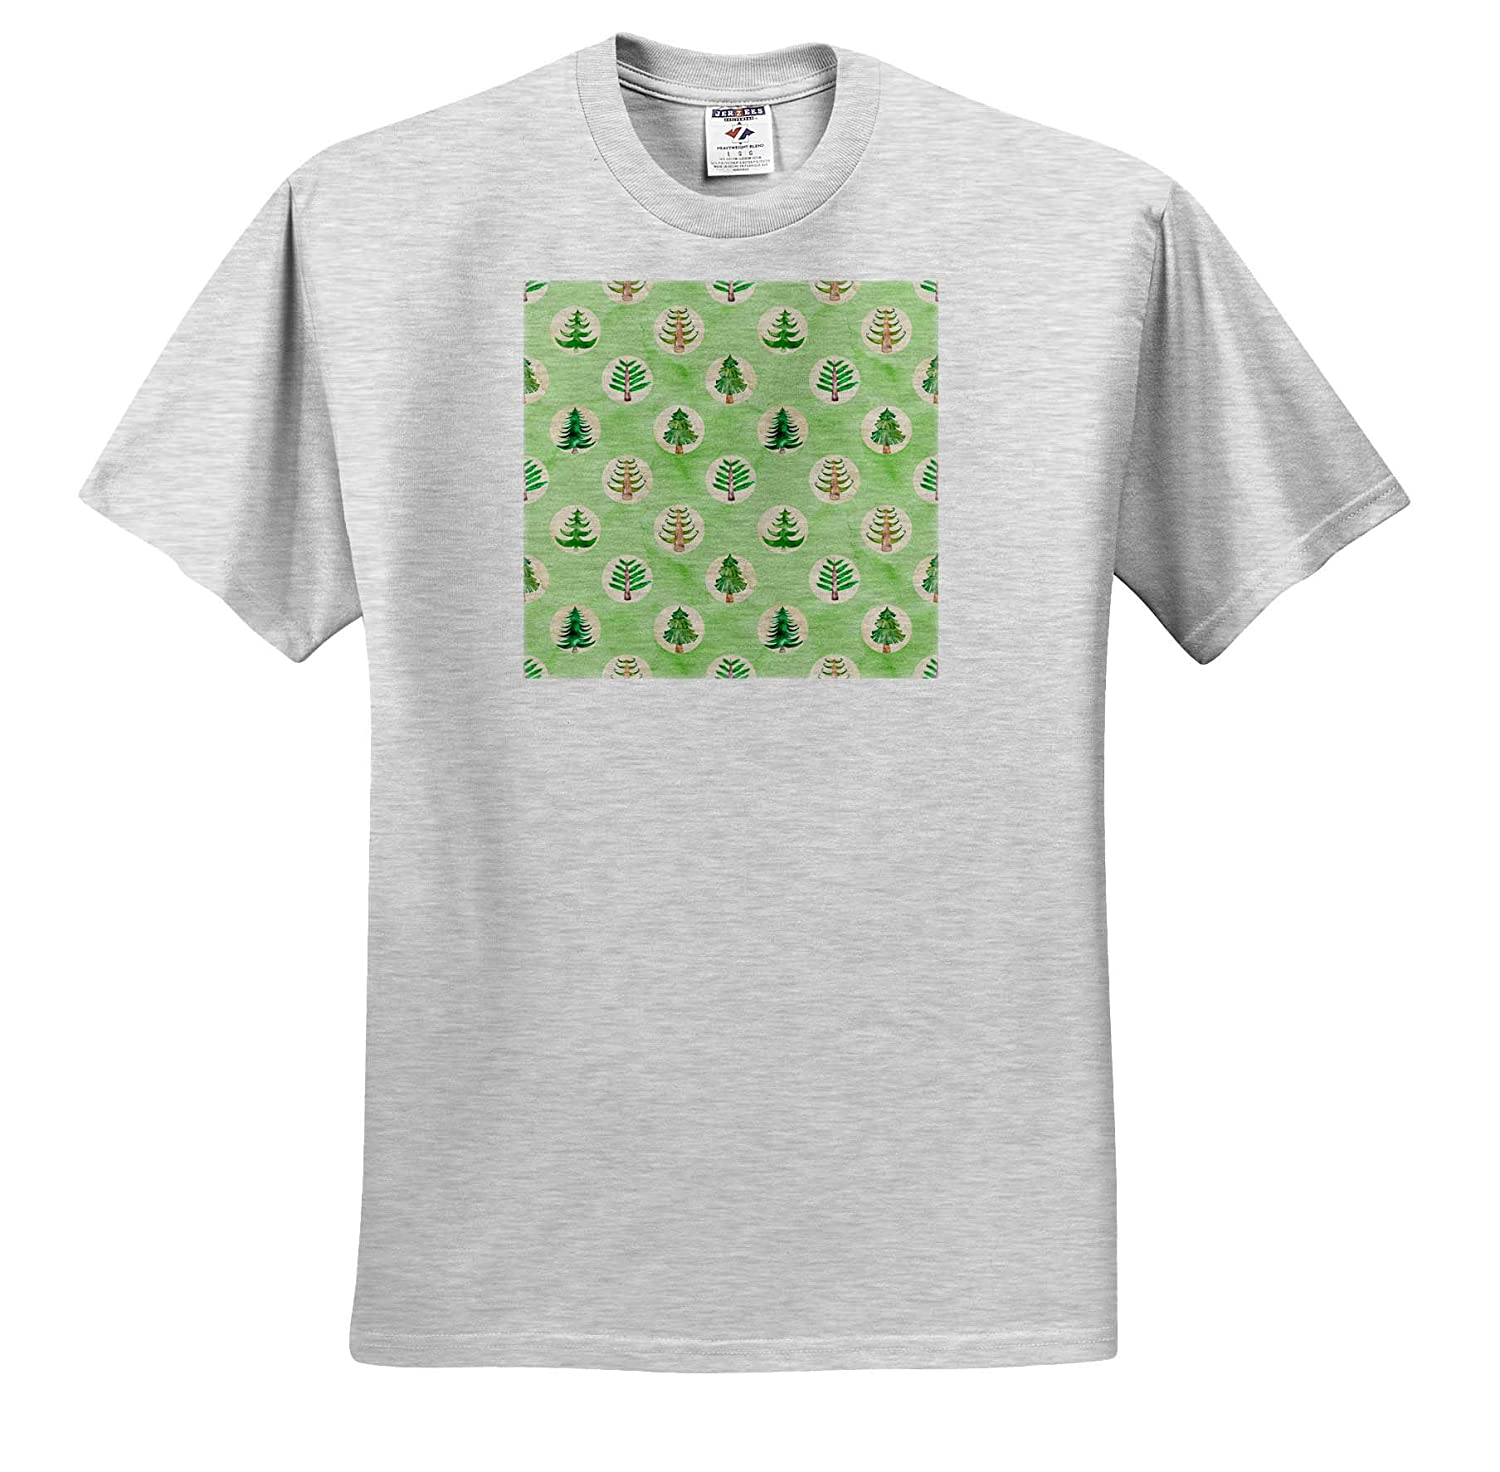 Cute Image of Watercolor Forest Trees in Circles Pattern ts/_318545 3dRose Anne Marie Baugh Christmas Adult T-Shirt XL